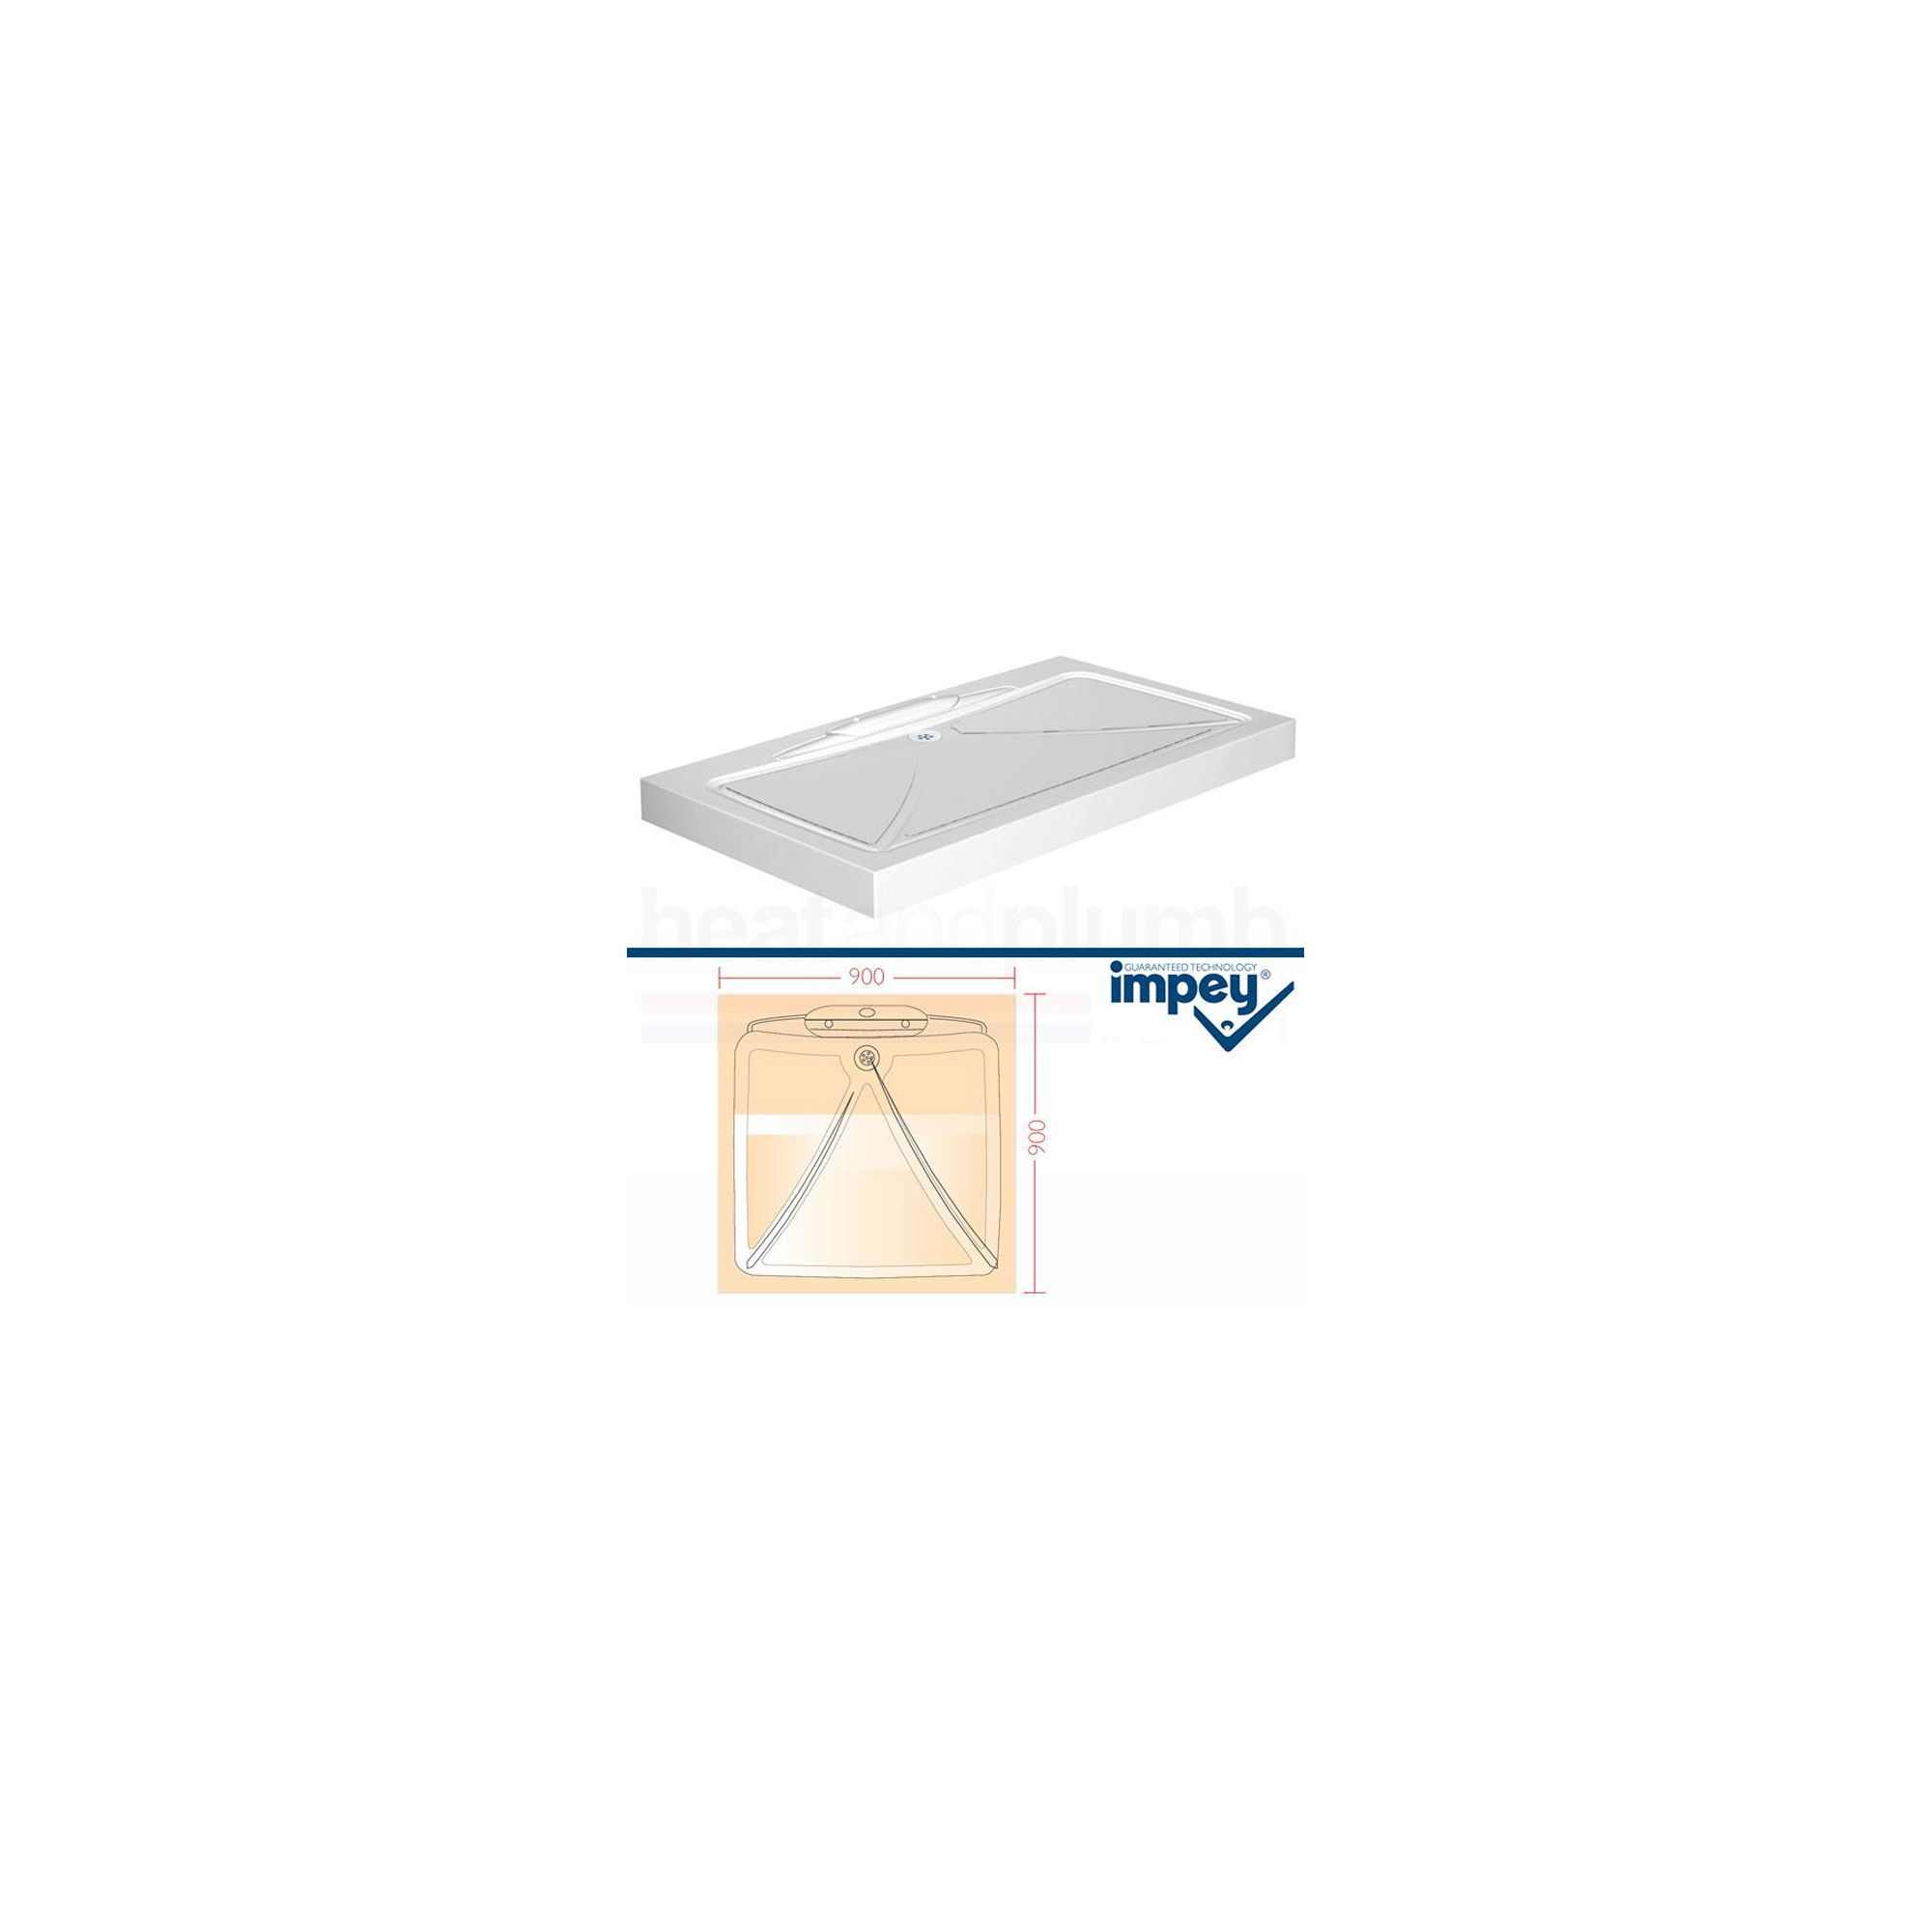 Impey Mendip Shower Tray 900mm x 900mm at Tesco Direct